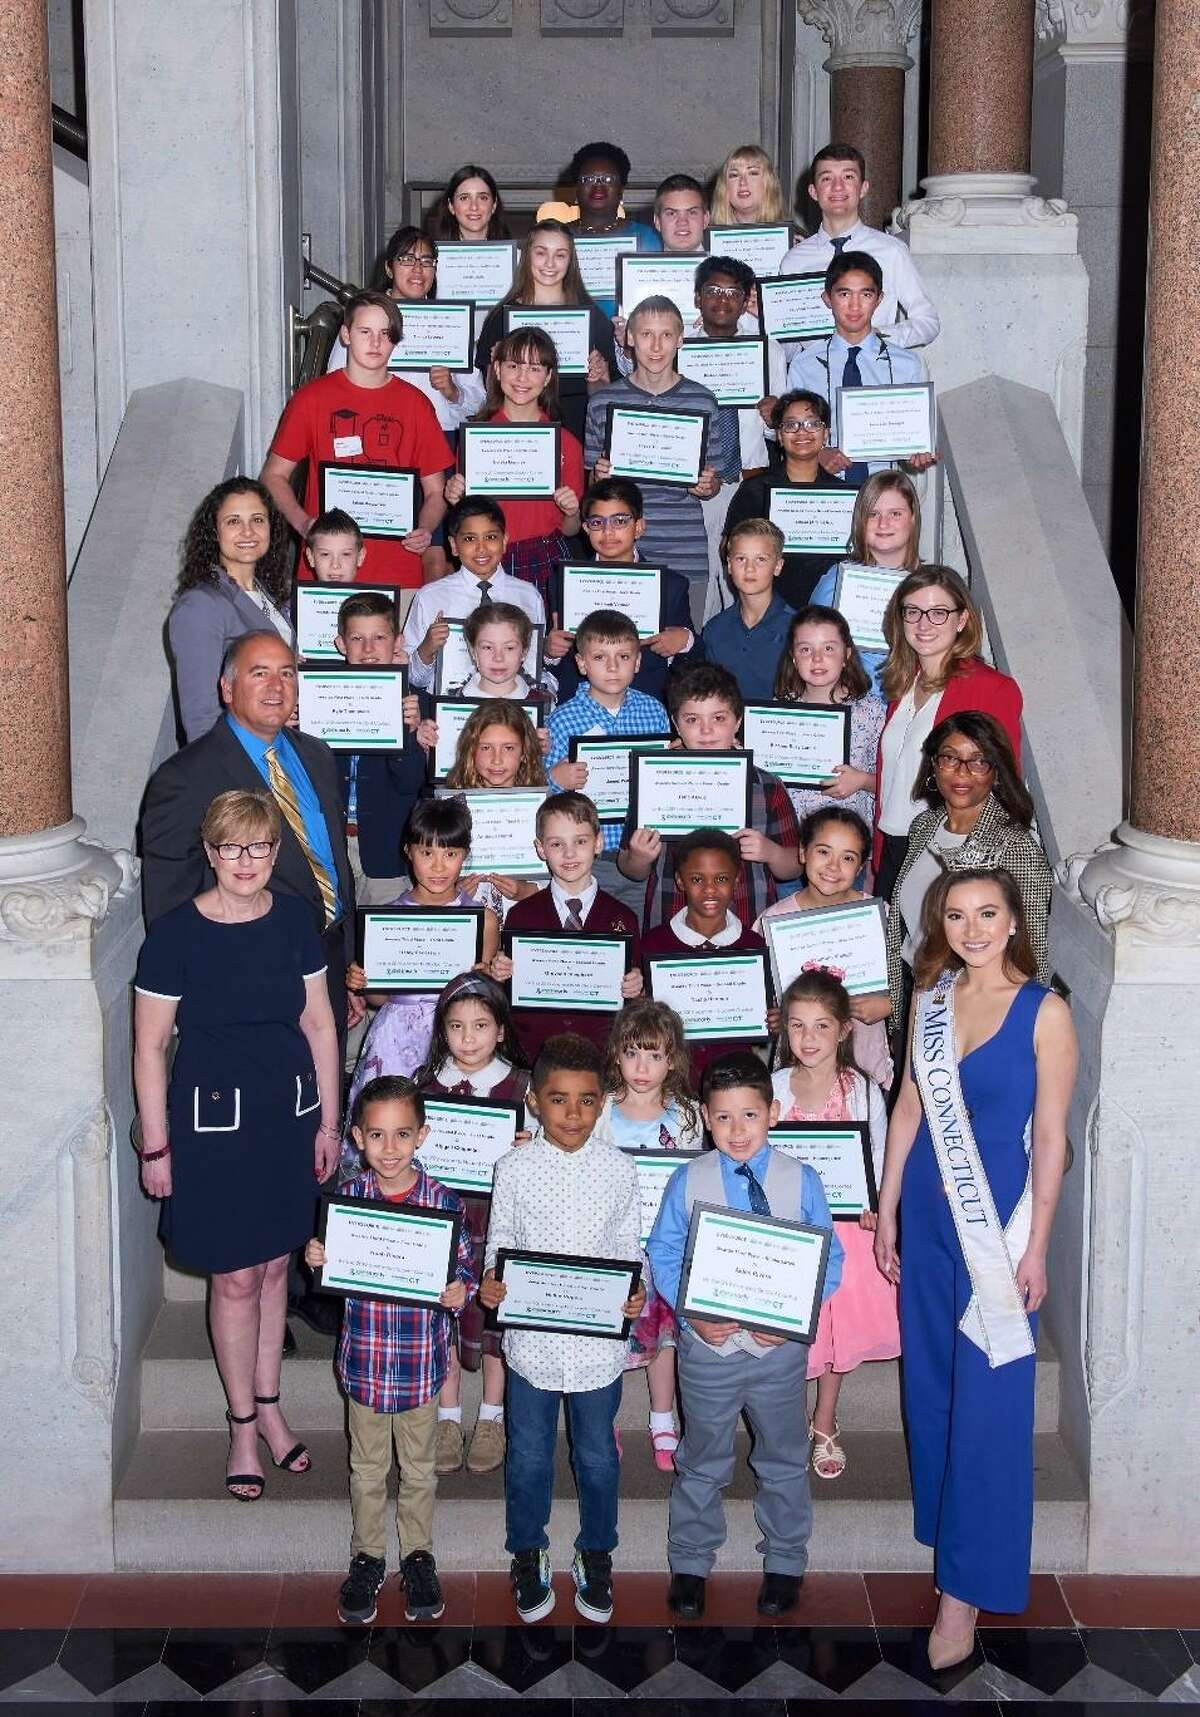 Torrington students were among the children honored last week as finalists at the 14th eesmarts™ Student Contest ceremony in Hartford. The contest is annually presented by Energize Connecticut in partnership with Eversource and United Illuminating, Southern Connecticut Gas and Connecticut Natural Gas.